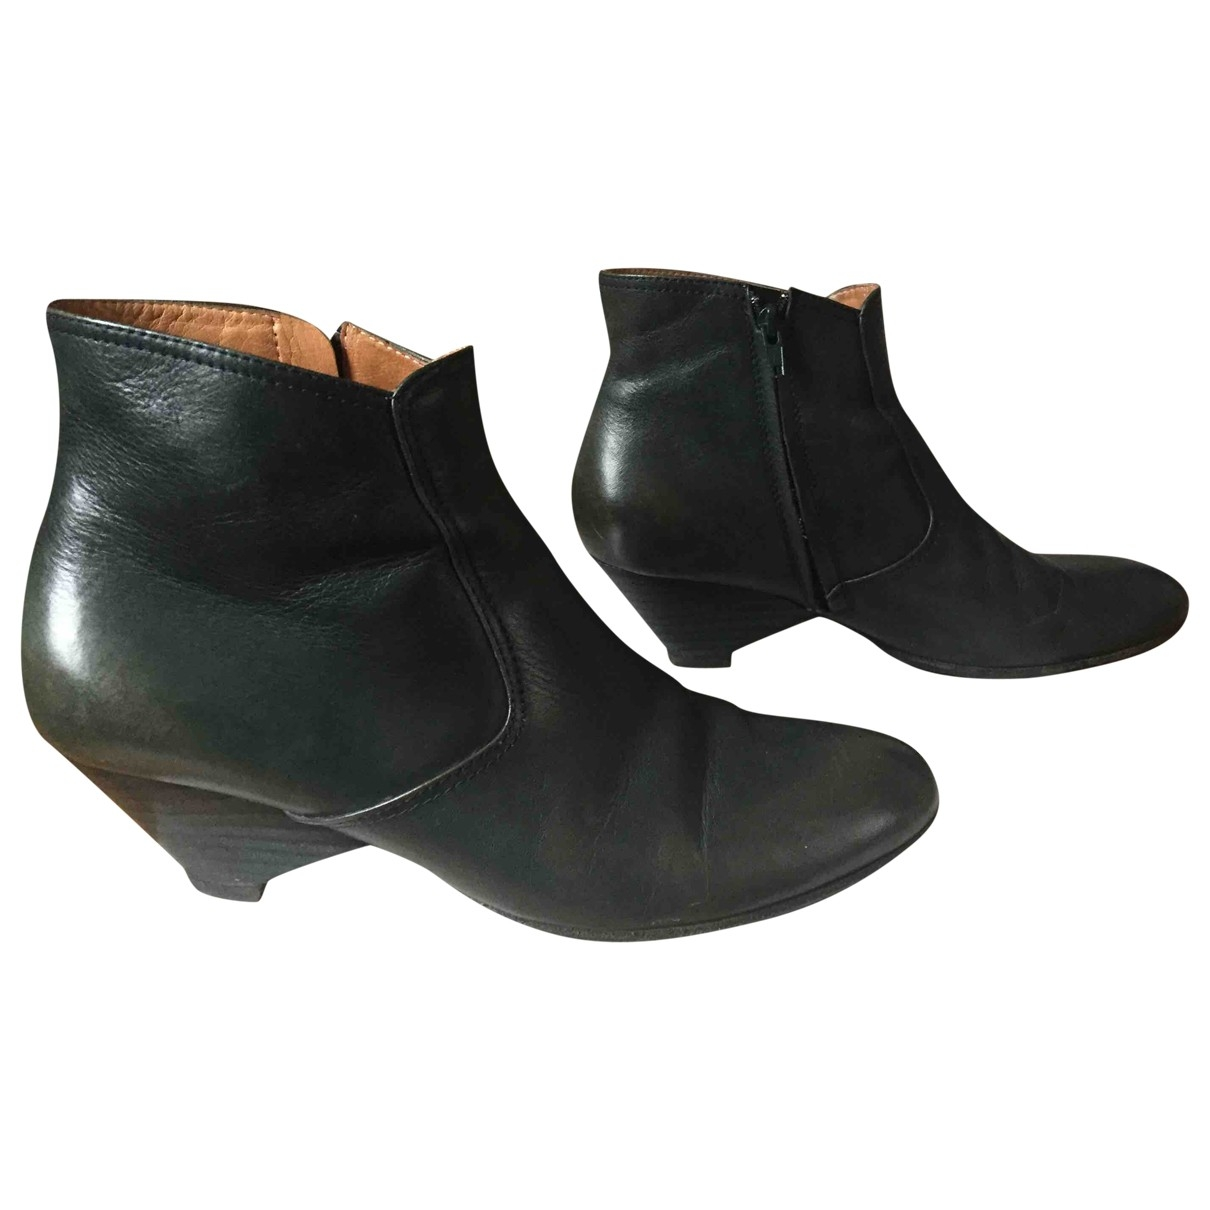 Maison Martin Margiela \N Green Leather Ankle boots for Women 37 EU